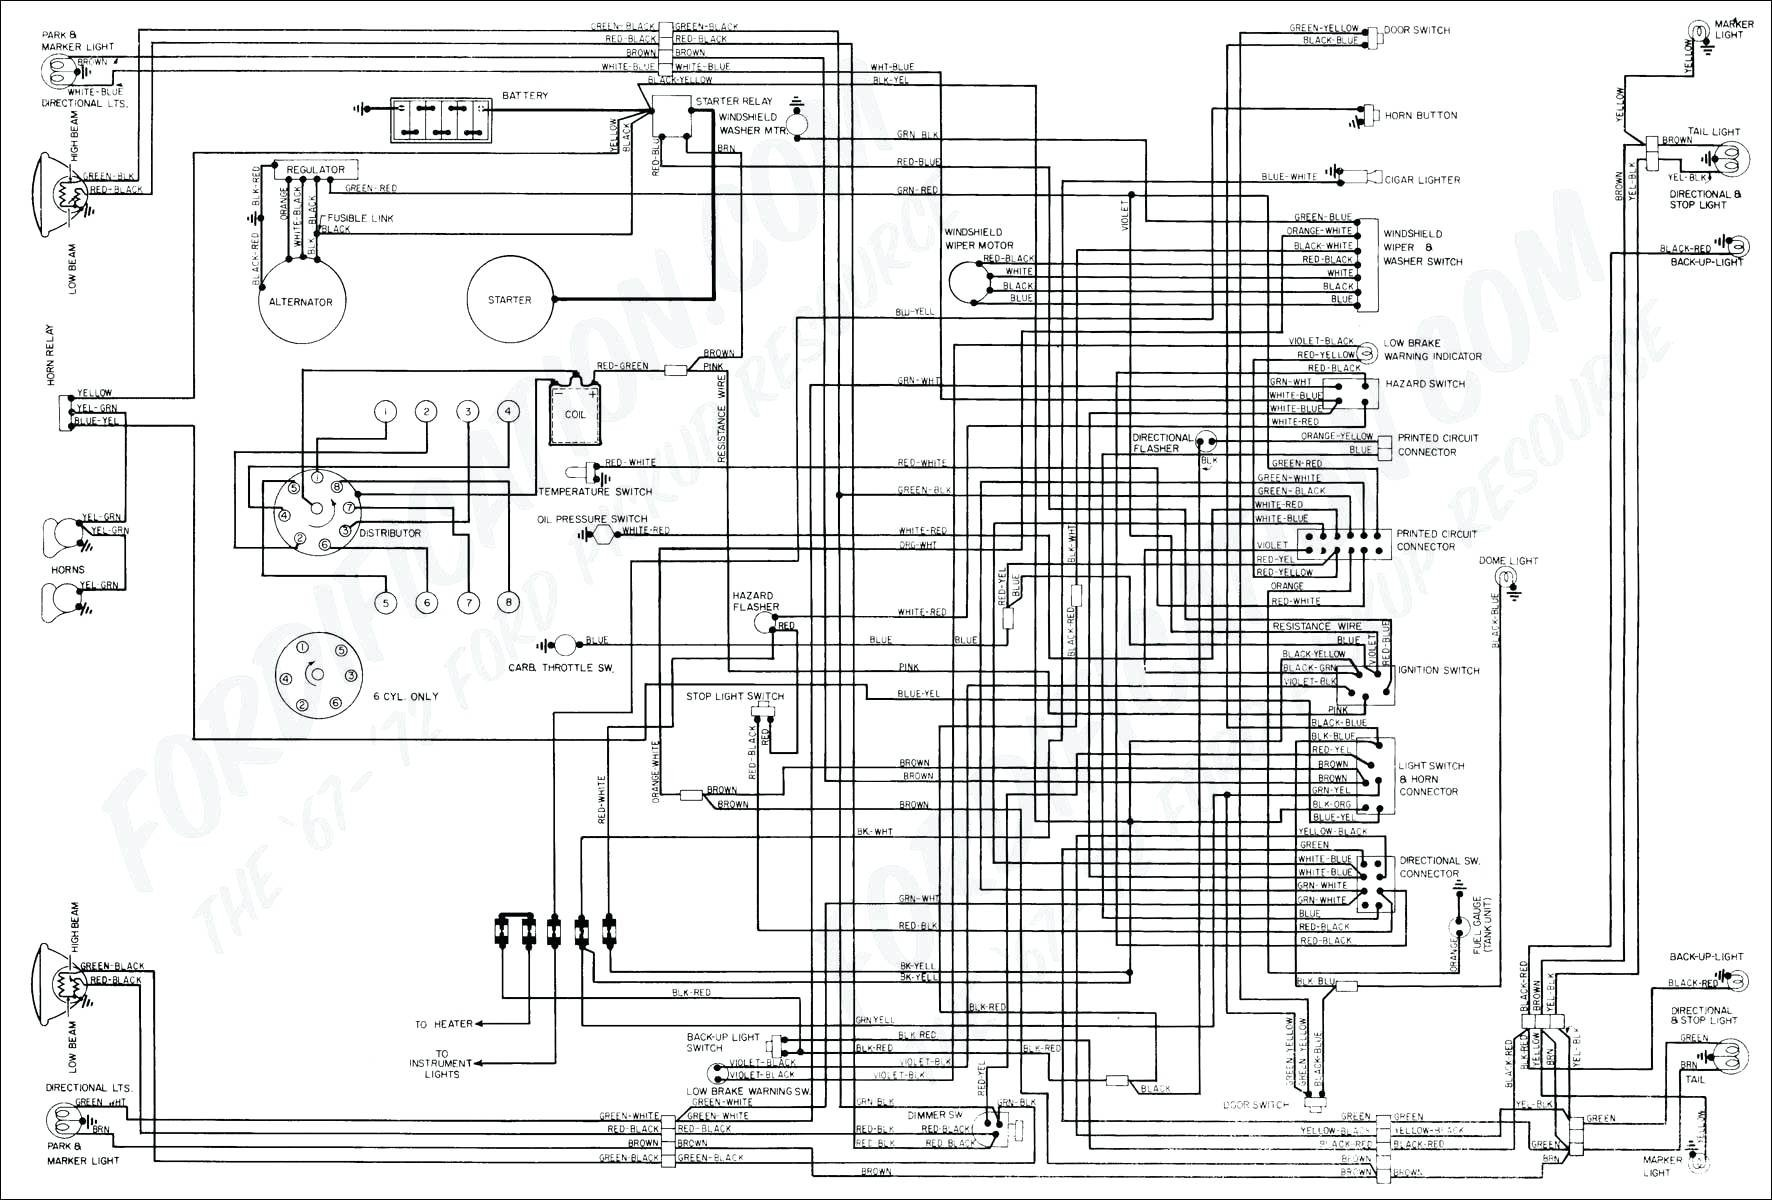 Ford F150 Wiring Harness Diagram ford F150 Trailer Wiring Harness Diagram with Wire Saleexpert Me for Of Ford F150 Wiring Harness Diagram